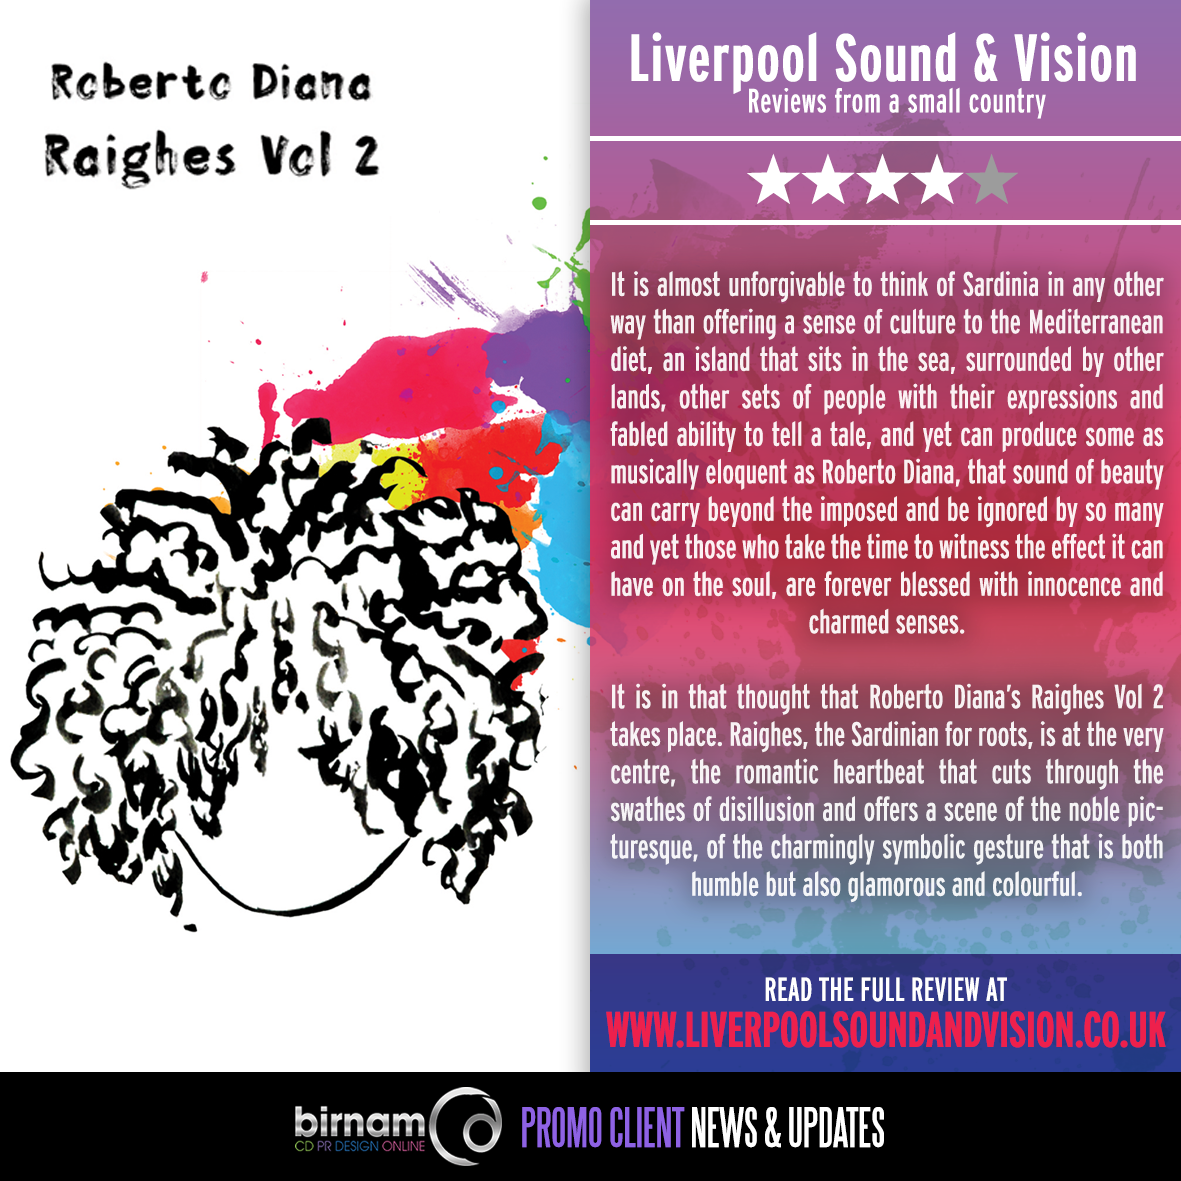 Raighes Vol 2 by Roberto diana 4 stelle su liverpool sound and vision